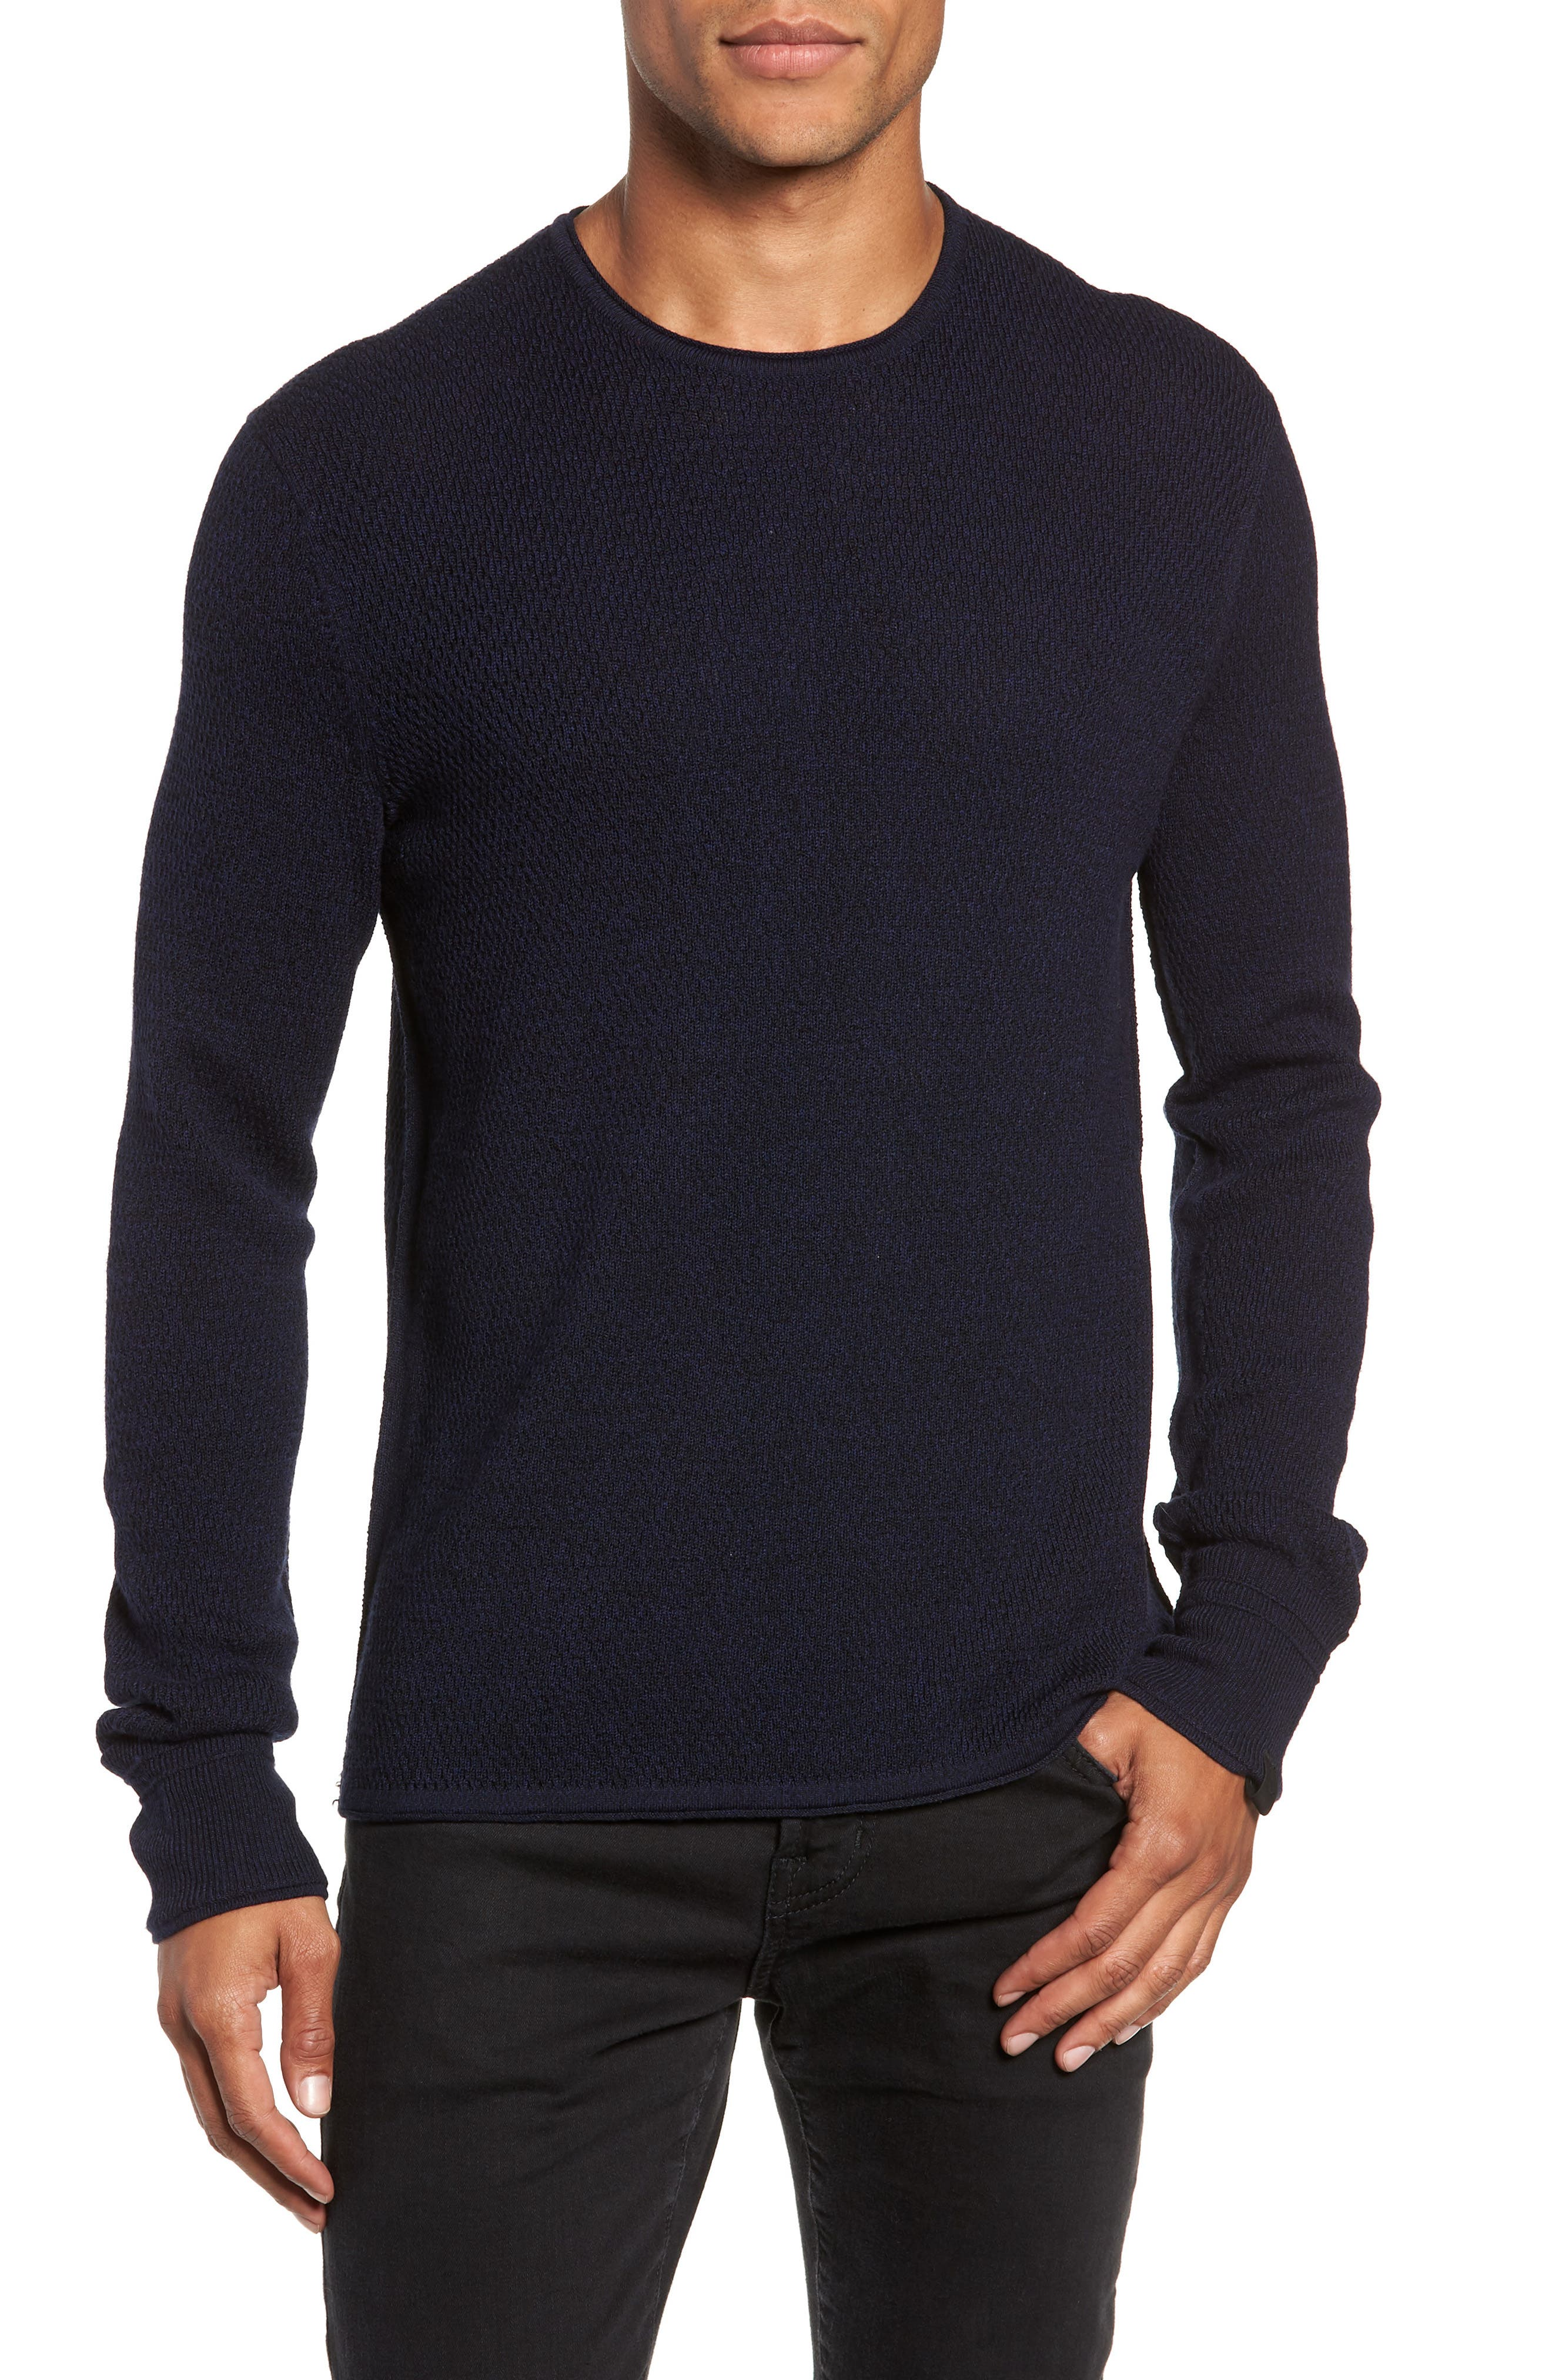 Gregory Wool Blend Crewneck Sweater,                         Main,                         color, NAVY